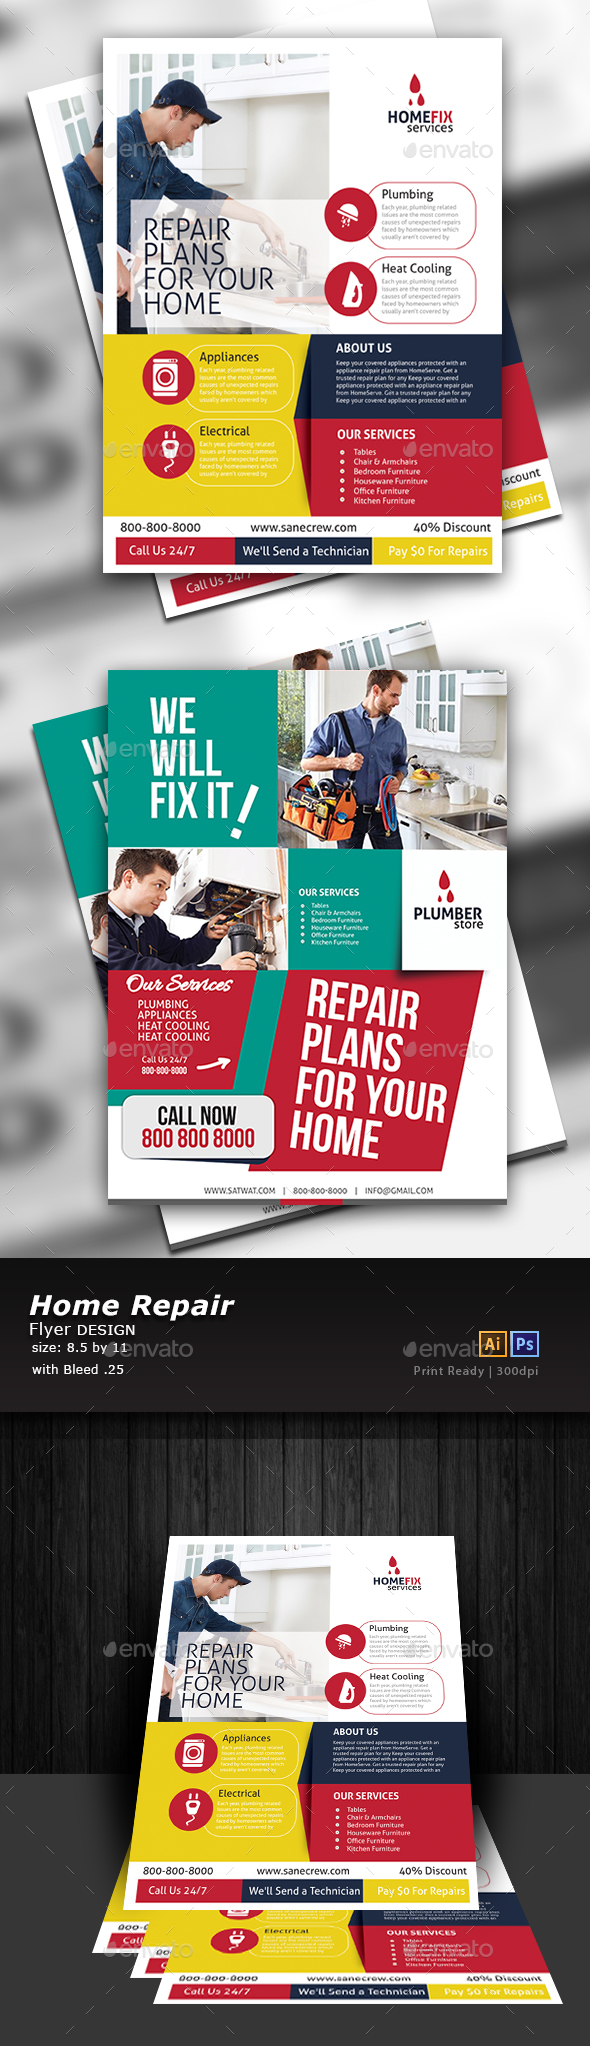 Home Repair Flyer Template - Commerce Flyers